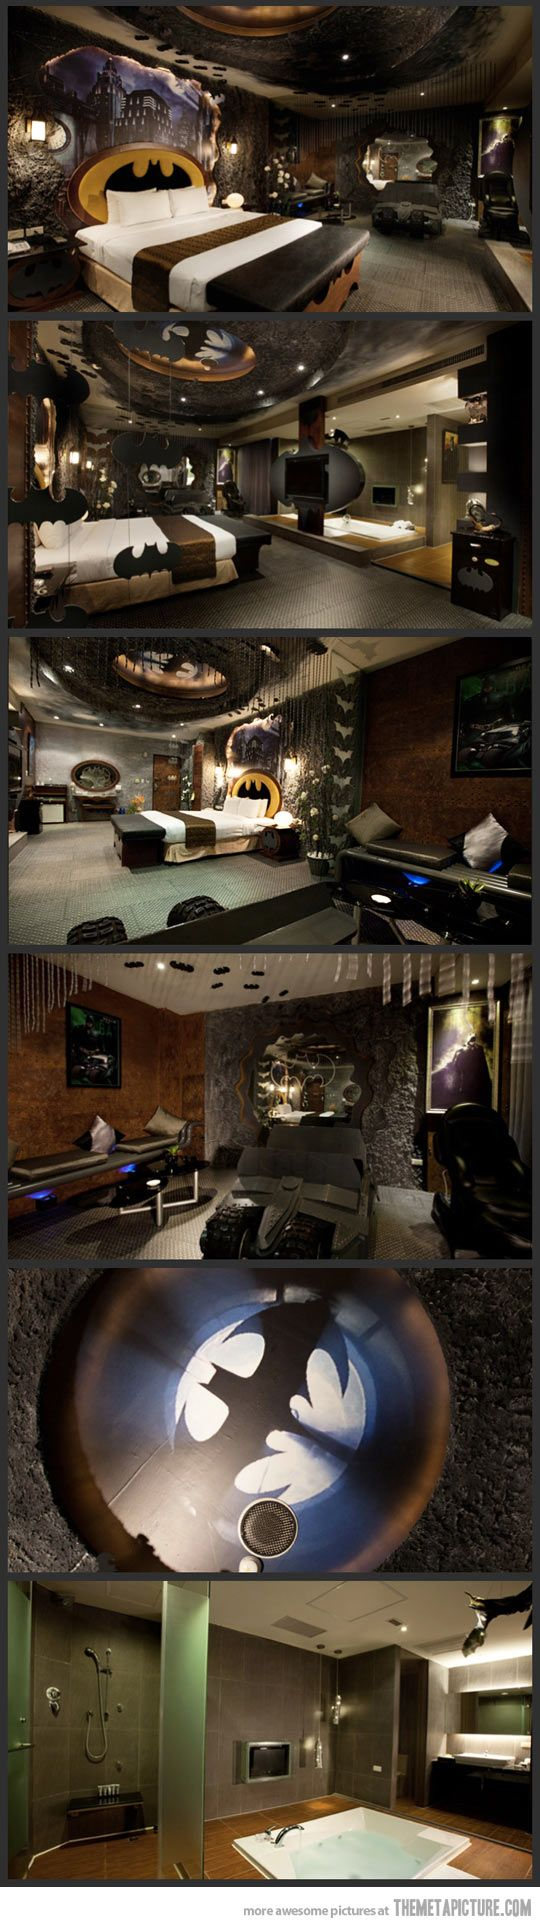 Batman Motel in Taiwan. read about this before. they charge by the *cough* hour